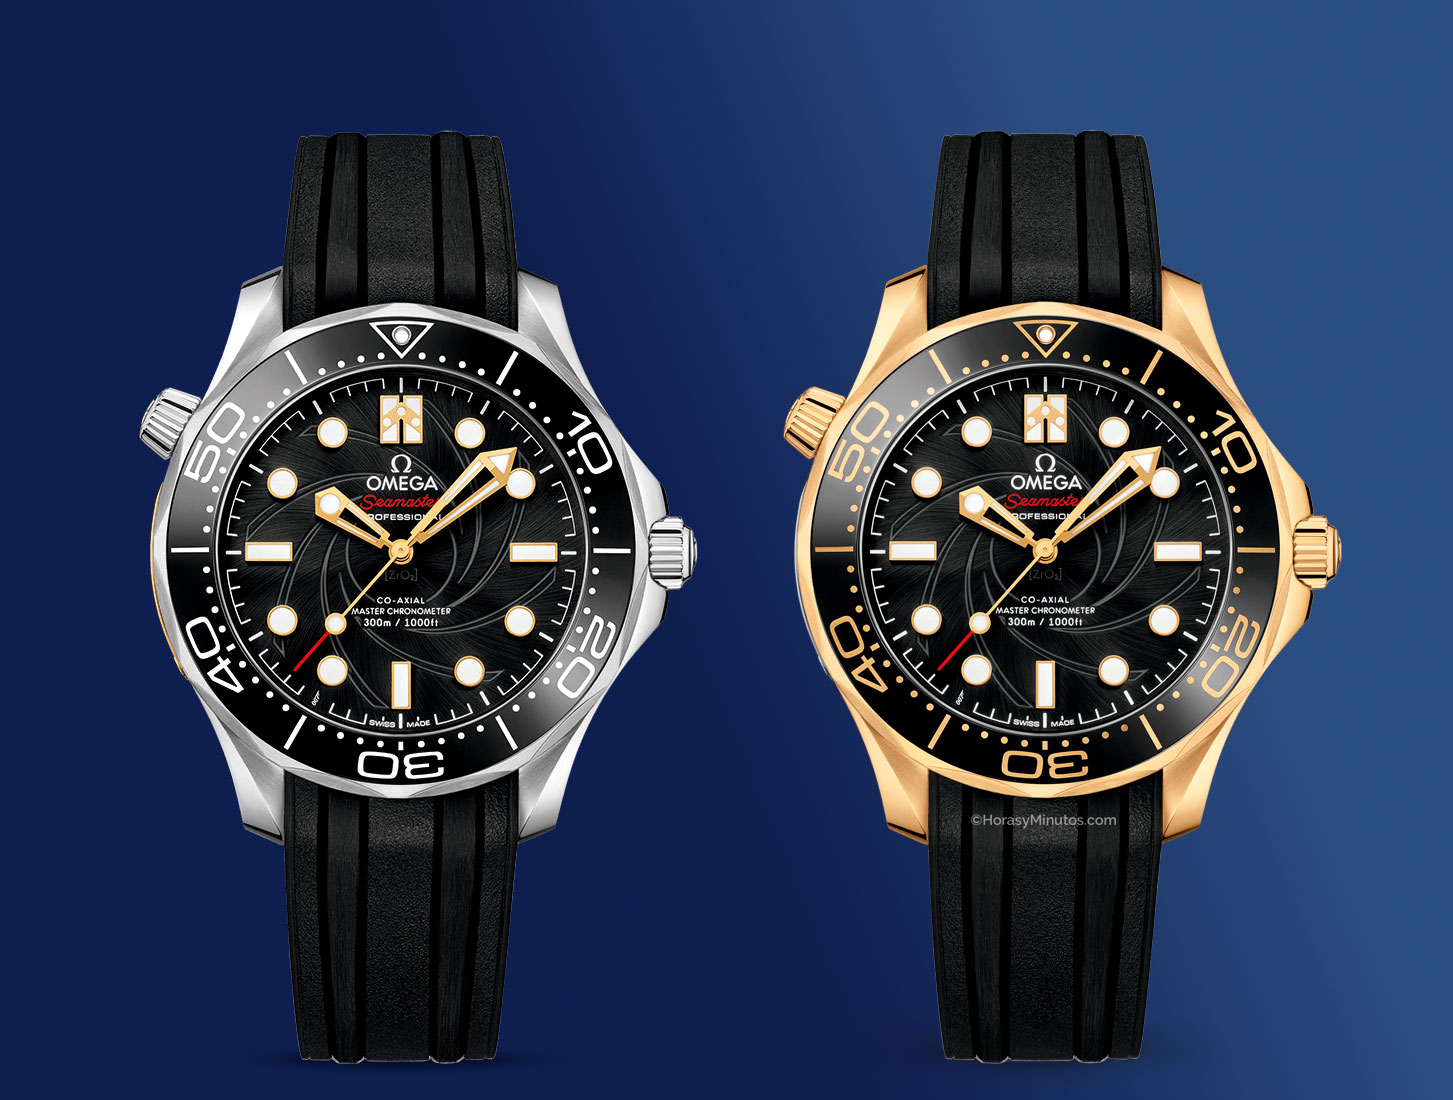 frontal de los Seamaster 300 M del Omega James Bond Limited Edition Set 1 Horas y Minutos